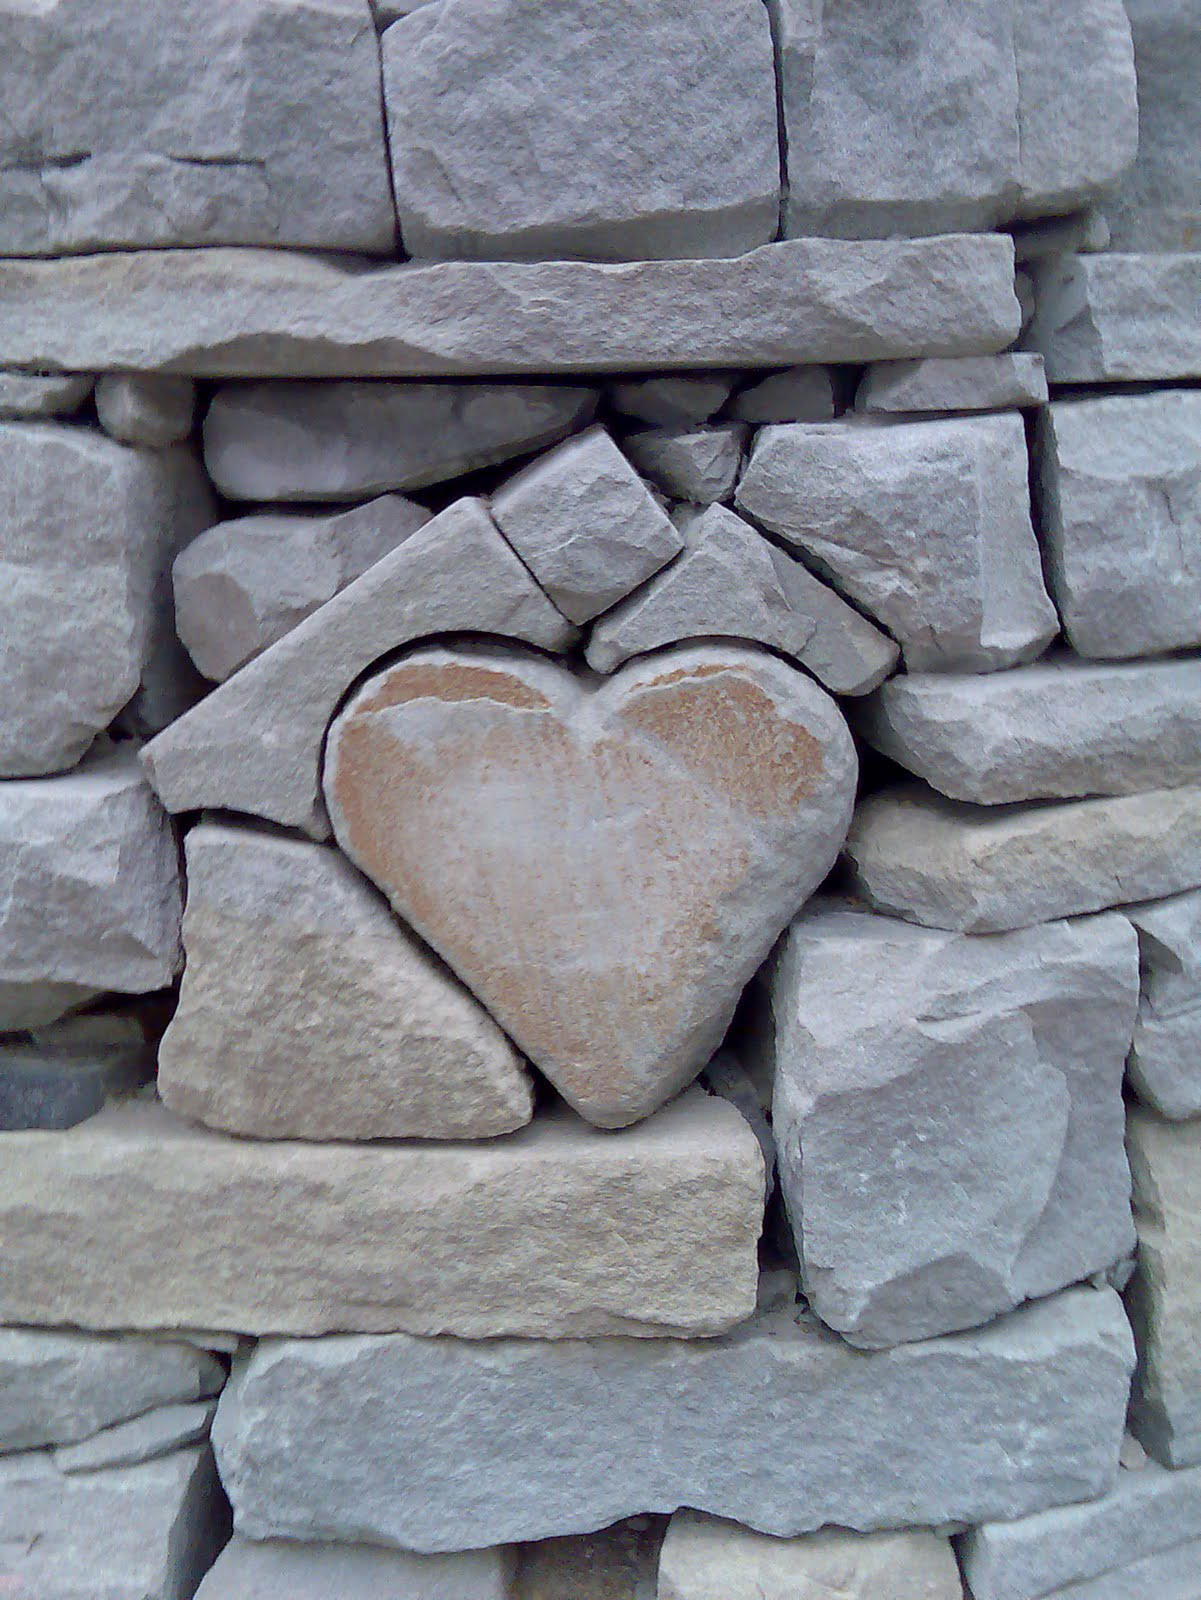 Making Angels Cry: Heart Of Stone